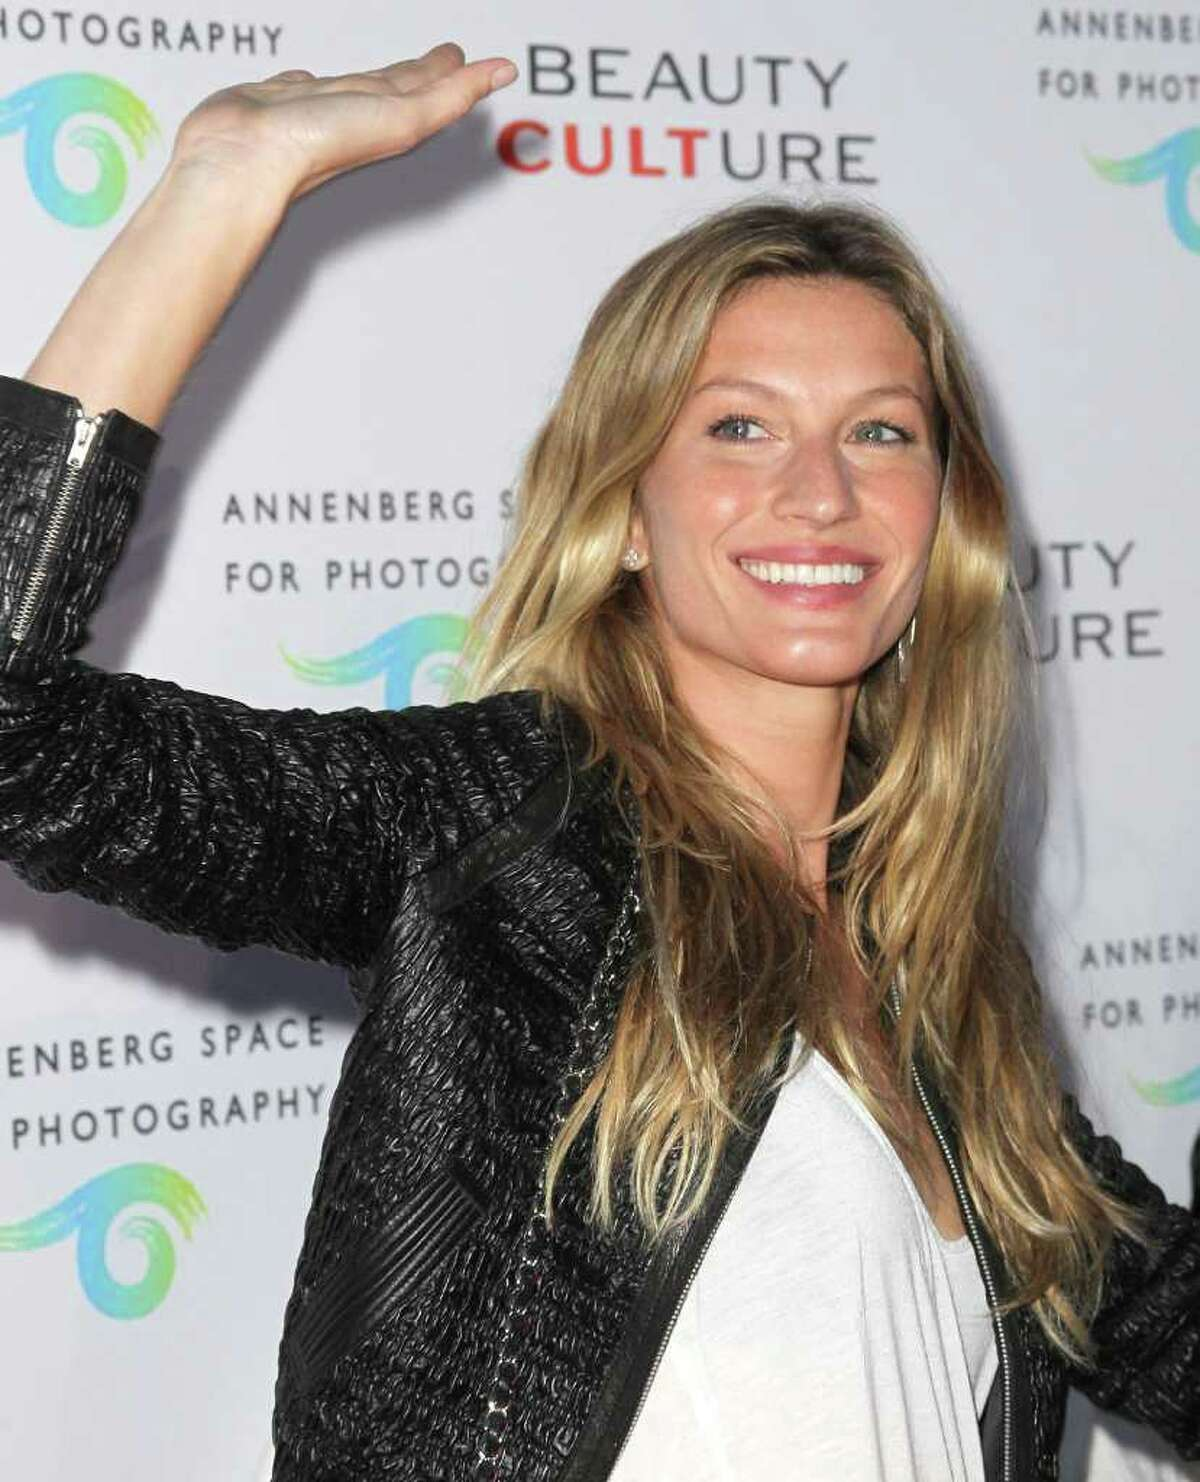 Model Gisele Bundchen attends the Opening Night of